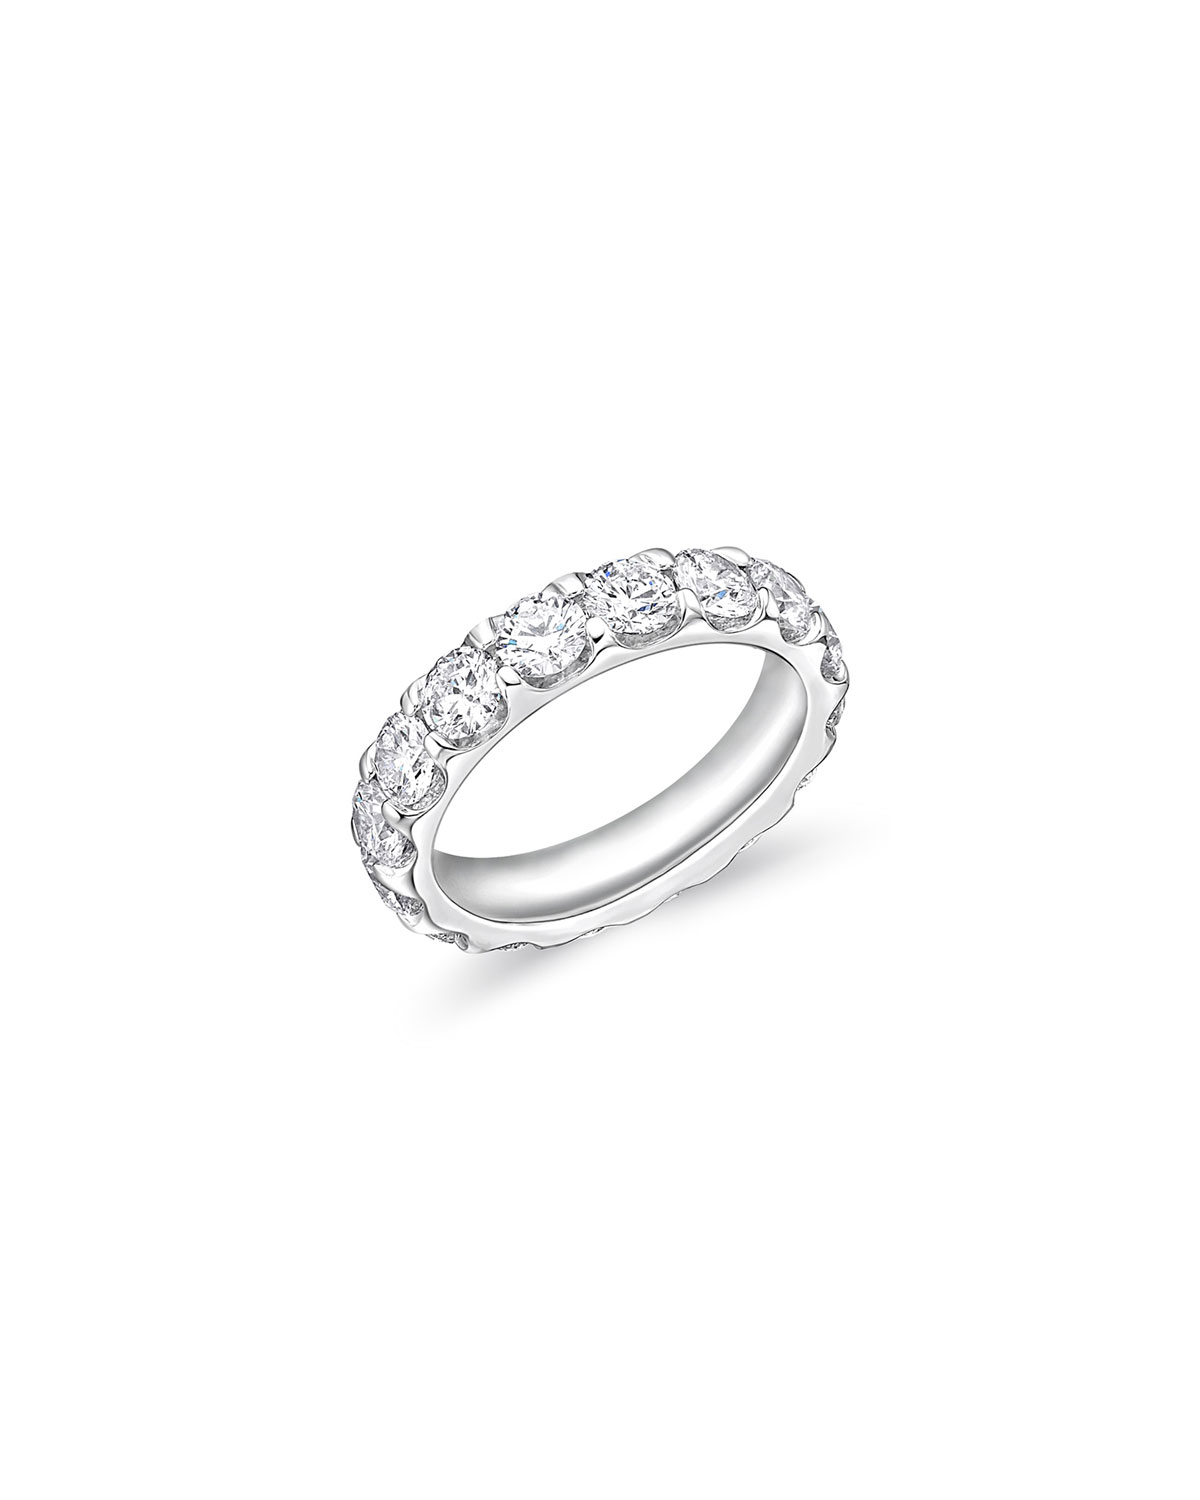 Memoire Odessa 18k White Gold Diamond Eternity Band, Size 6.5